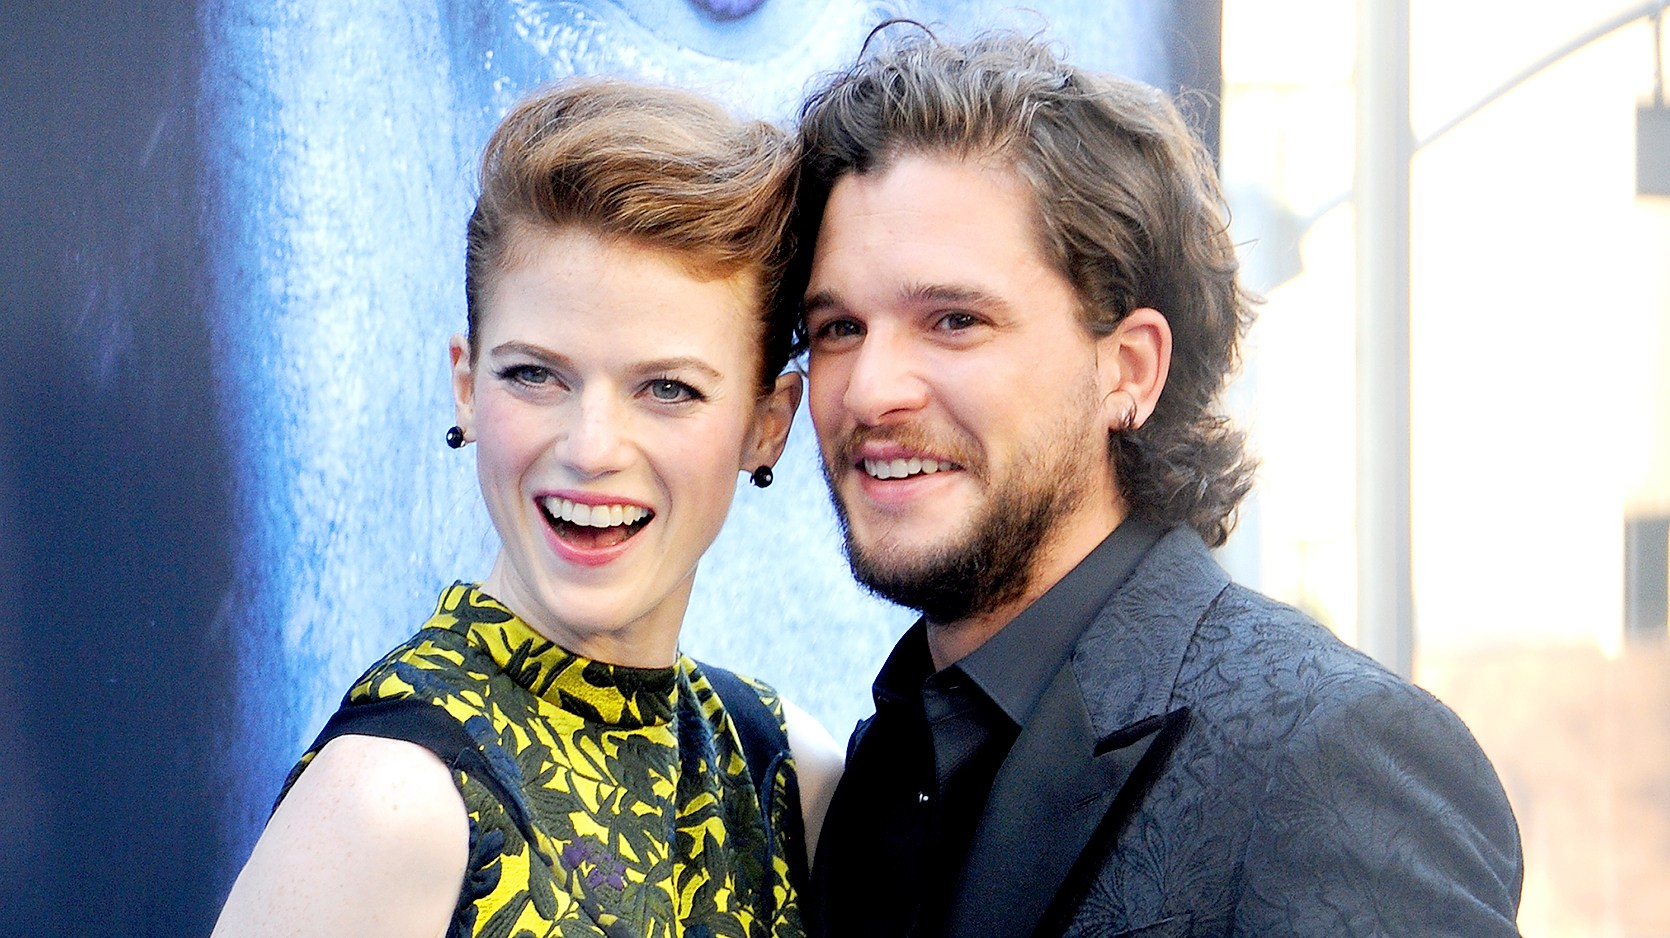 """Kit Harington and Rose Leslie arrive at the premiere of HBO's """"Game Of Thrones"""" Season 7 at Walt Disney Concert Hall on July 12, 2017 in Los Angeles, California."""